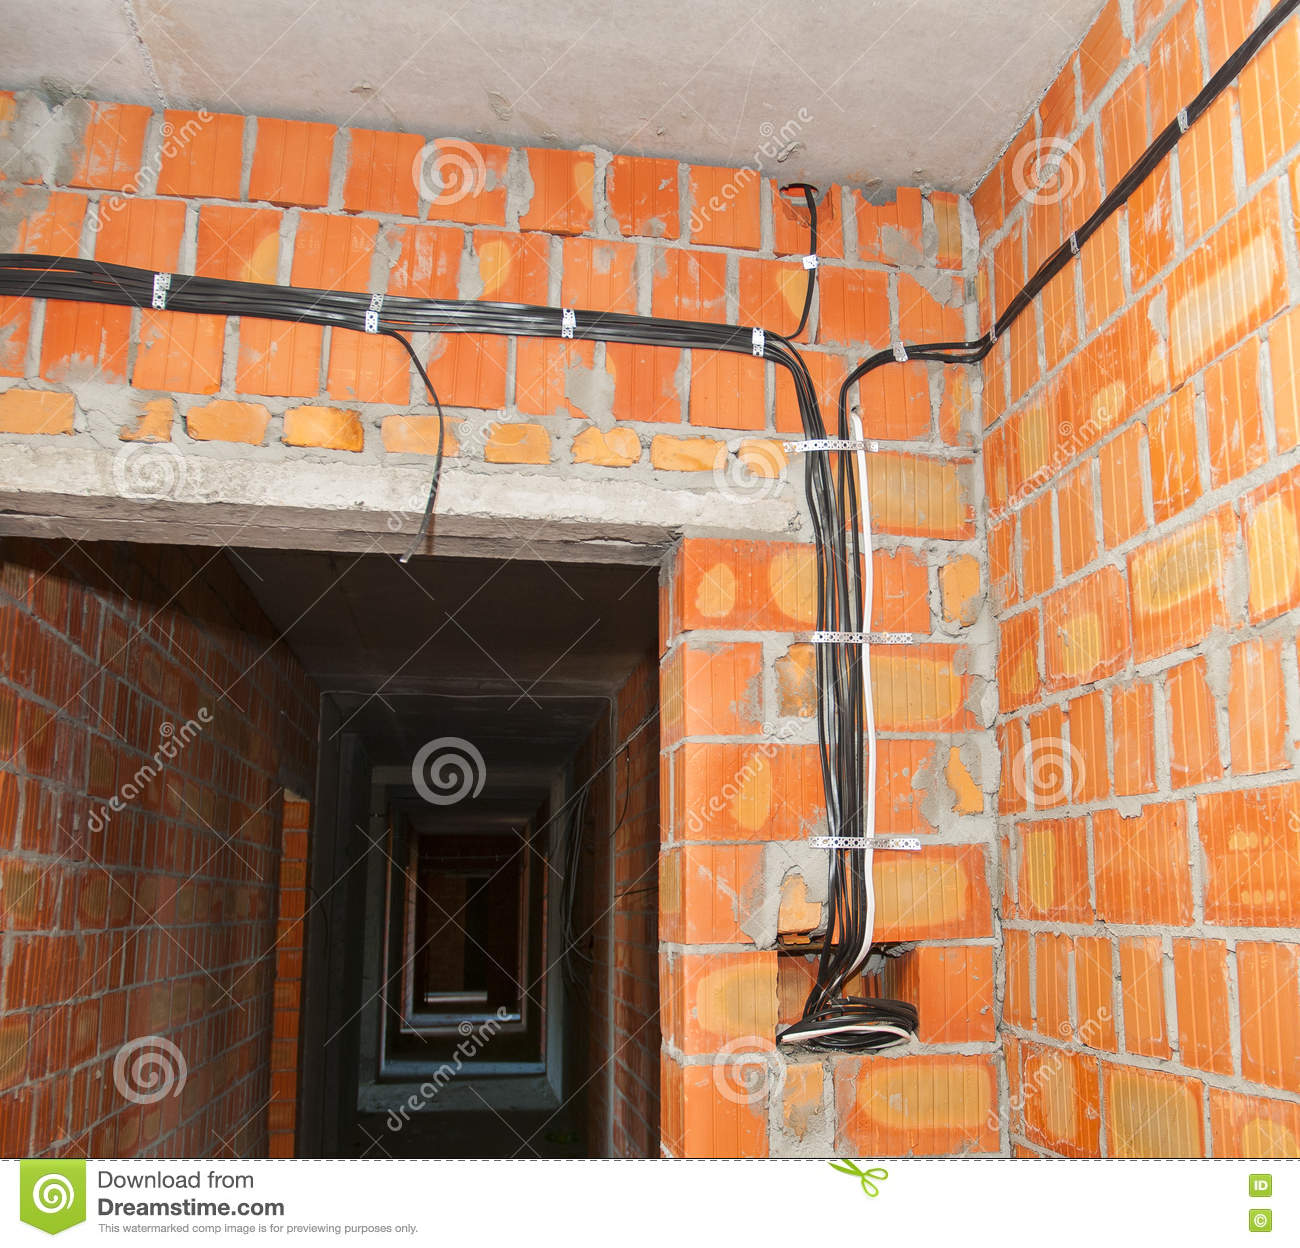 6 467 House Wiring Photos Free Royalty Free Stock Photos From Dreamstime